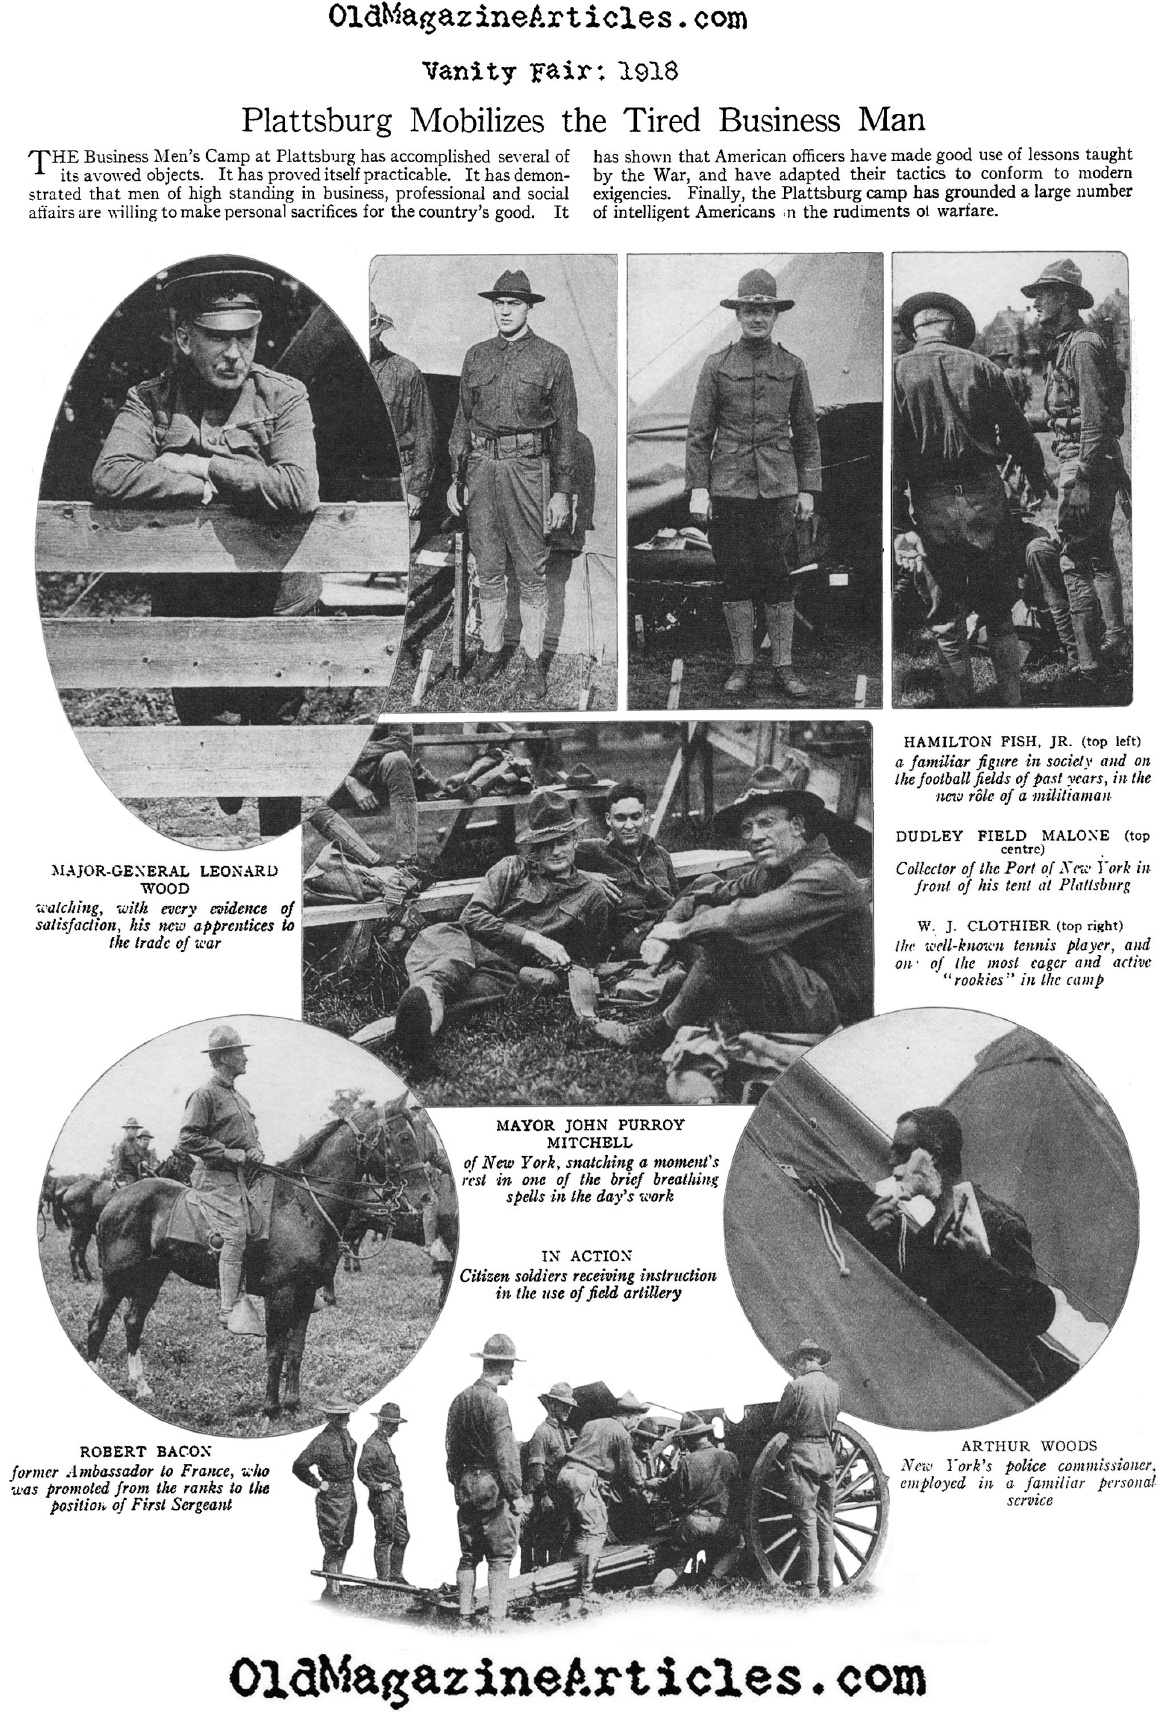 The Training of American Blue Blooded Officers at Plattsburg (Vanity Fair Magazine, 1917)